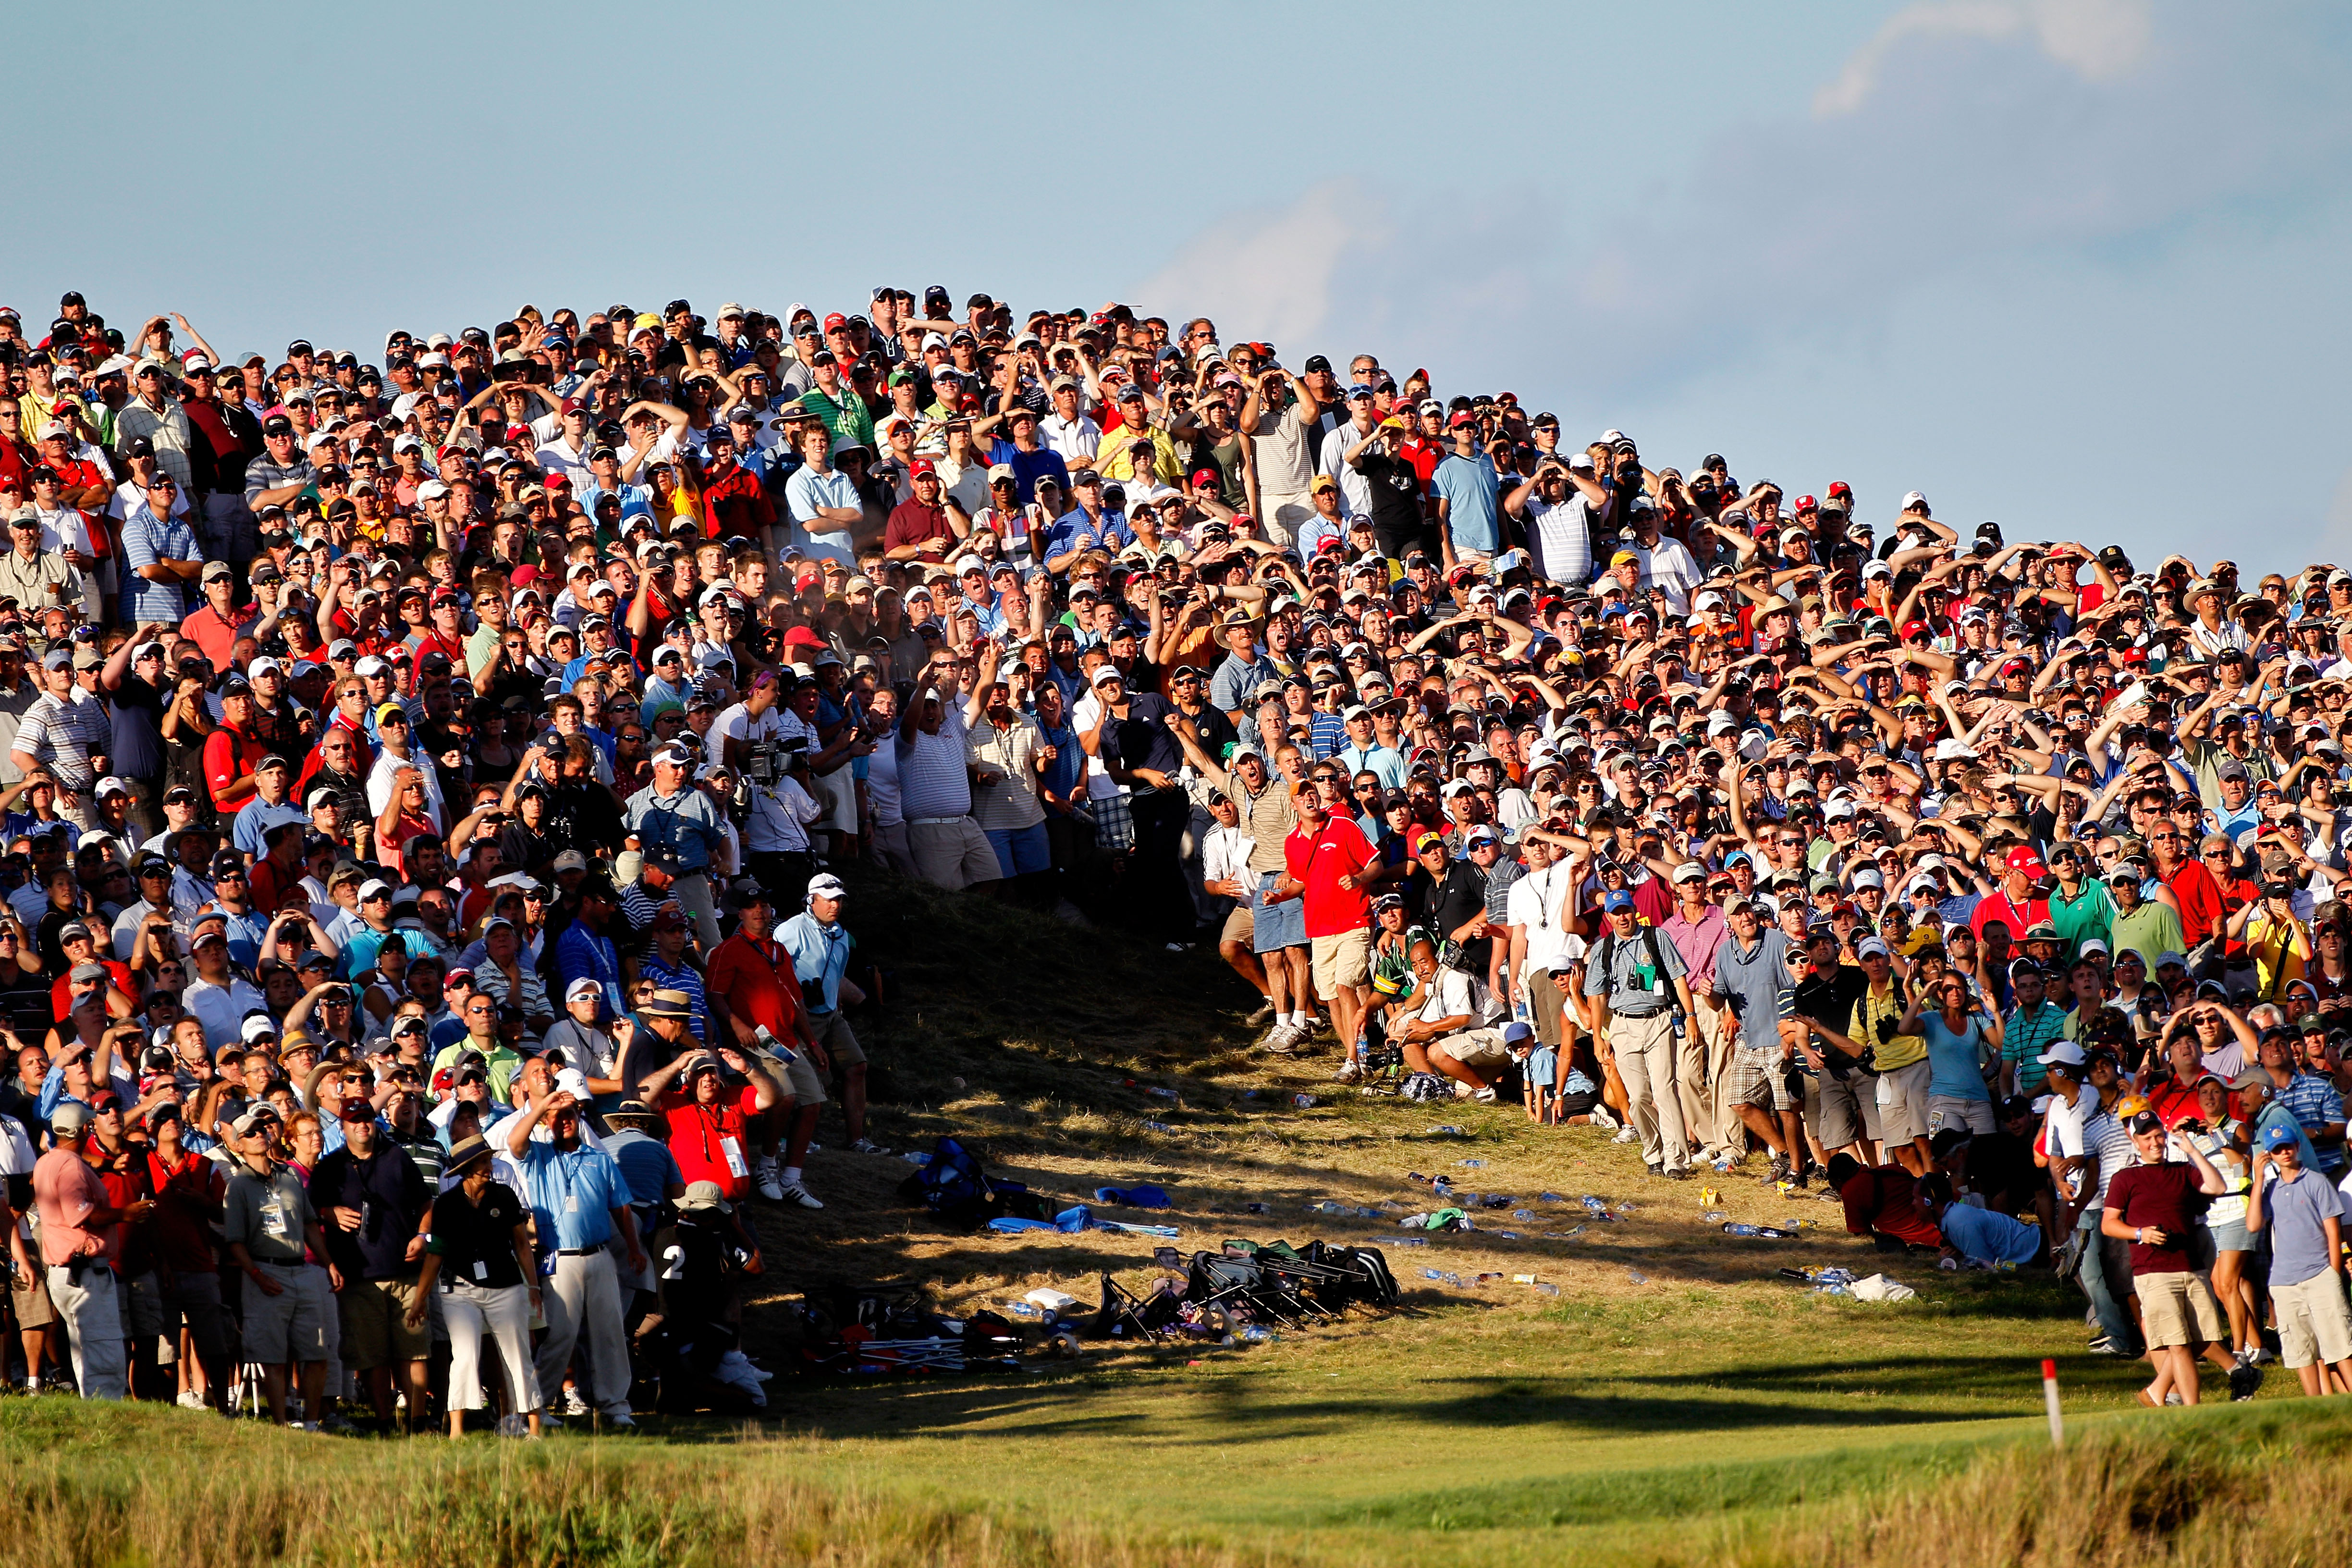 KOHLER, WI - AUGUST 15:  Dustin Johnson hits his second shot on the 18th hole during the final round of the 92nd PGA Championship on the Straits Course at Whistling Straits on August 15, 2010 in Kohler, Wisconsin.  (Photo by Sam Greenwood/Getty Images)